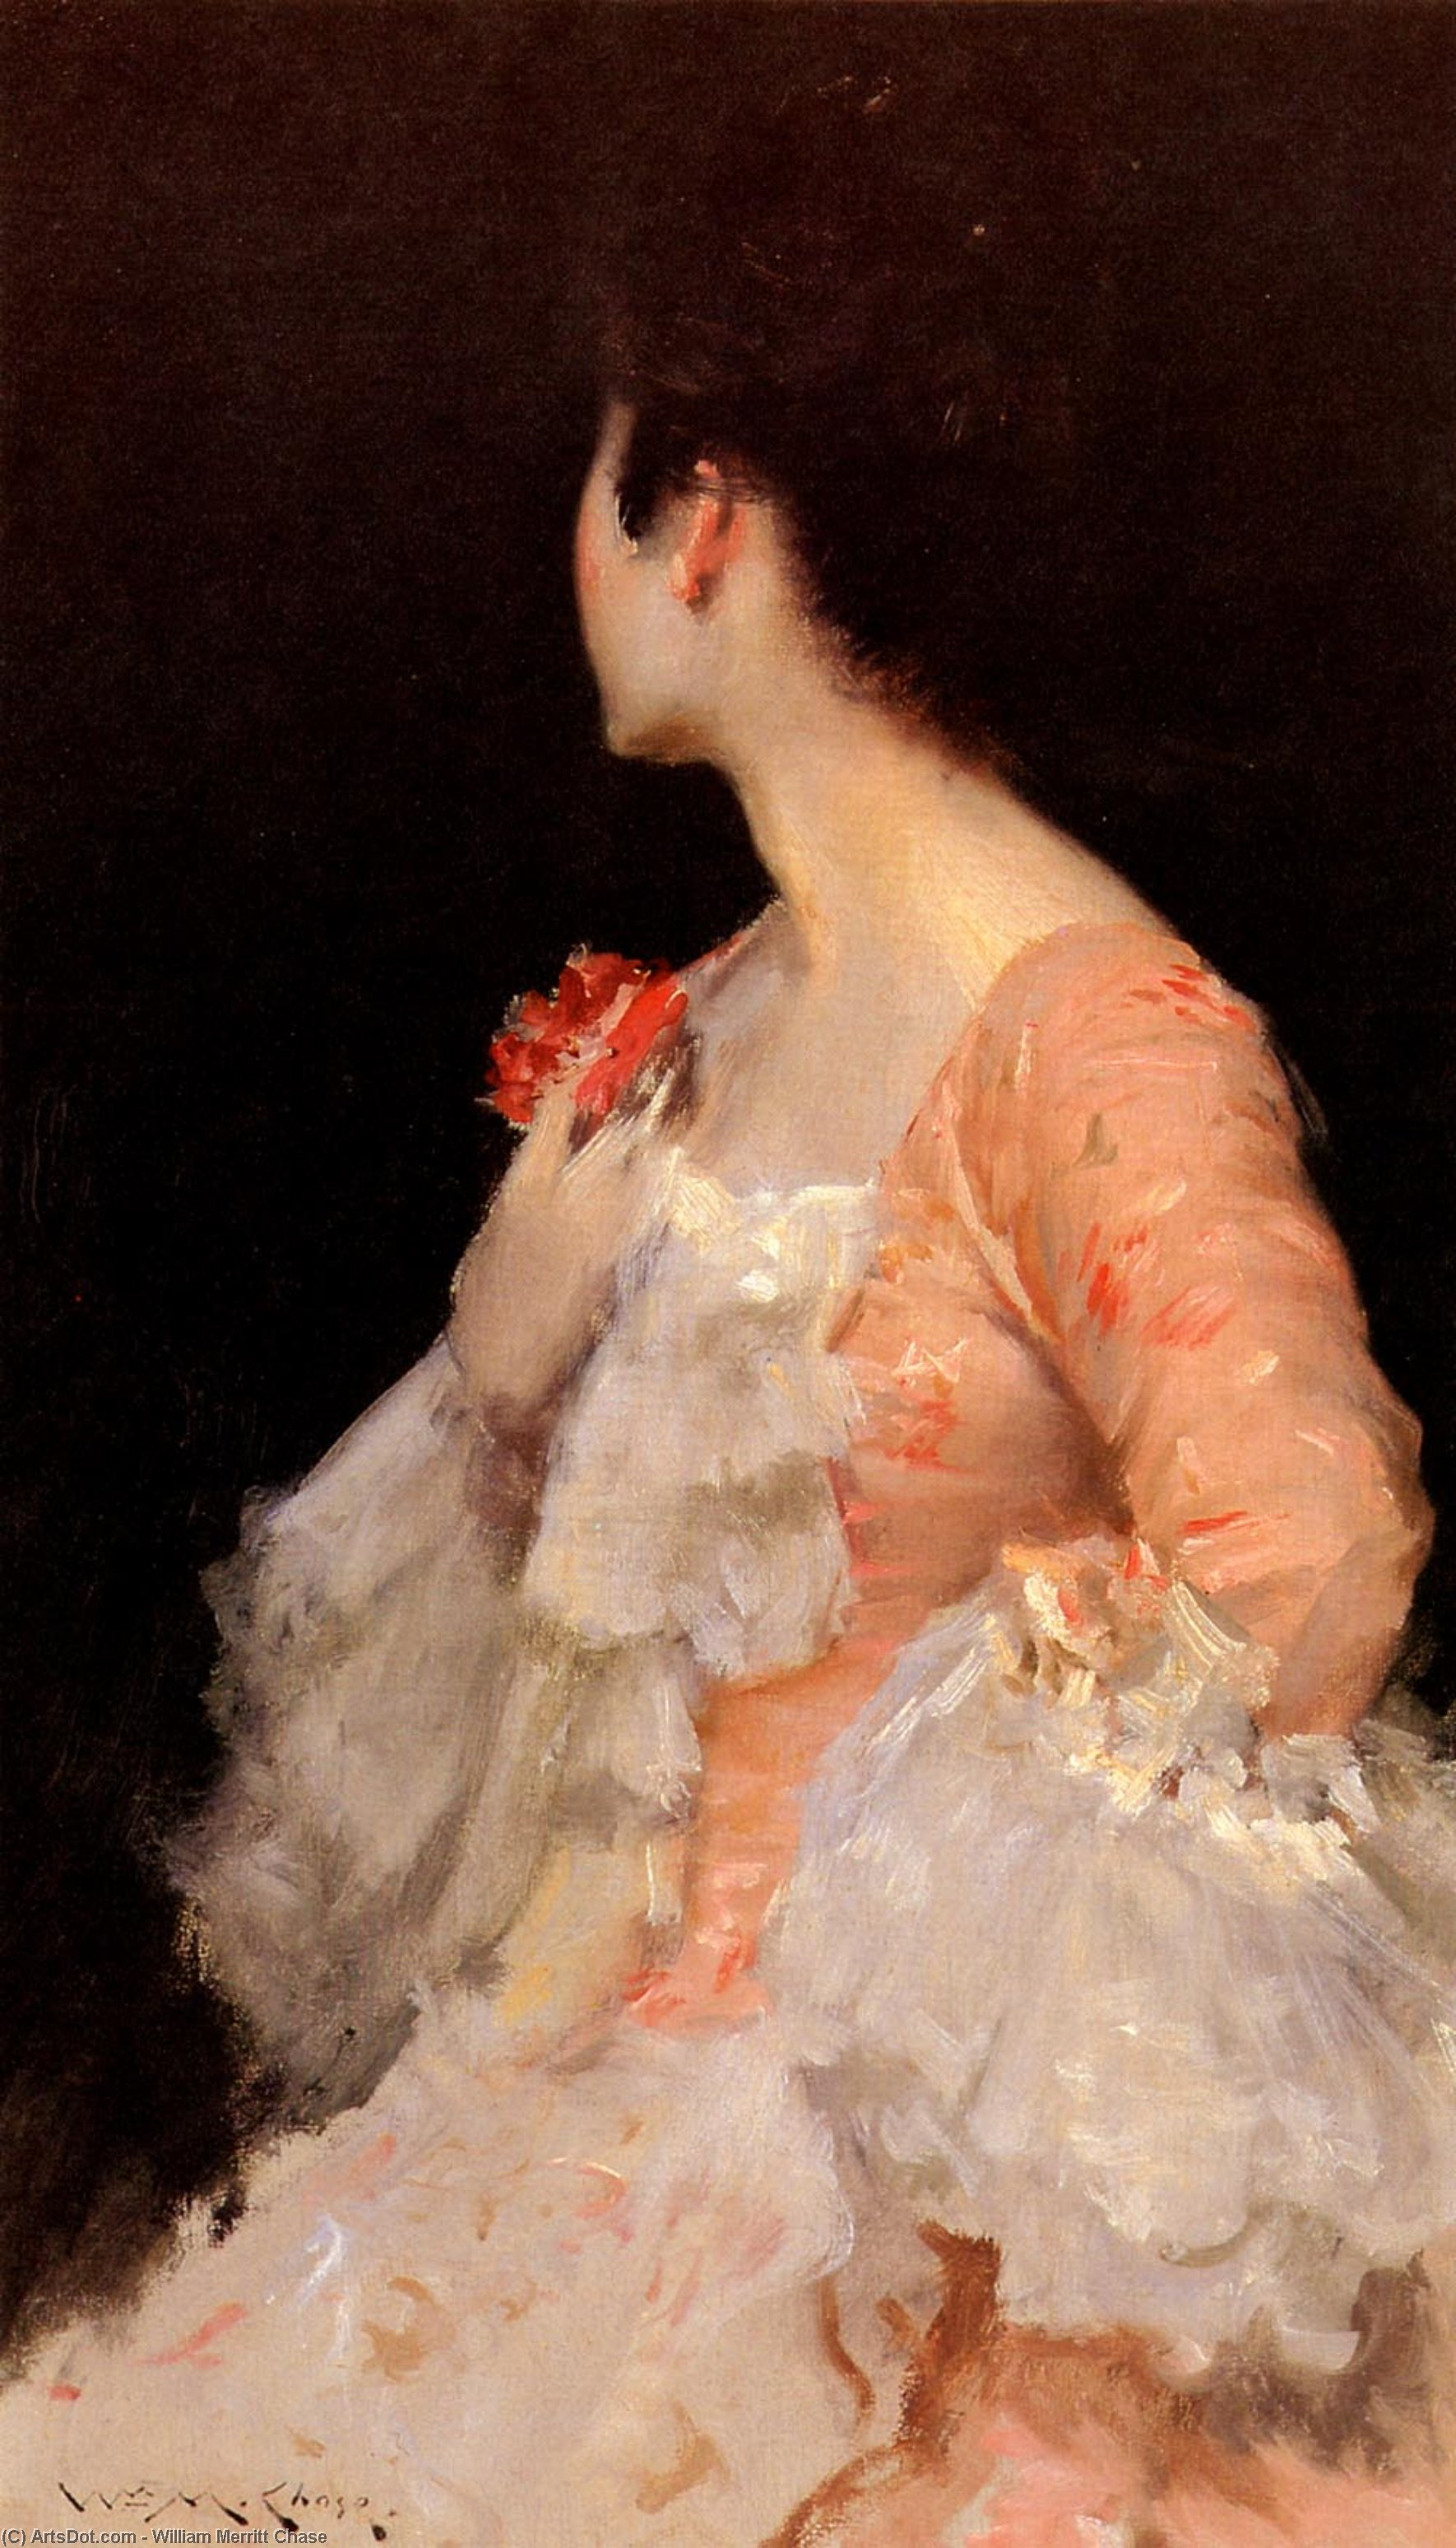 一个女人的肖像, 油画 通过 William Merritt Chase  (顺序 美術 幀畫冊專輯 William Merritt Chase)